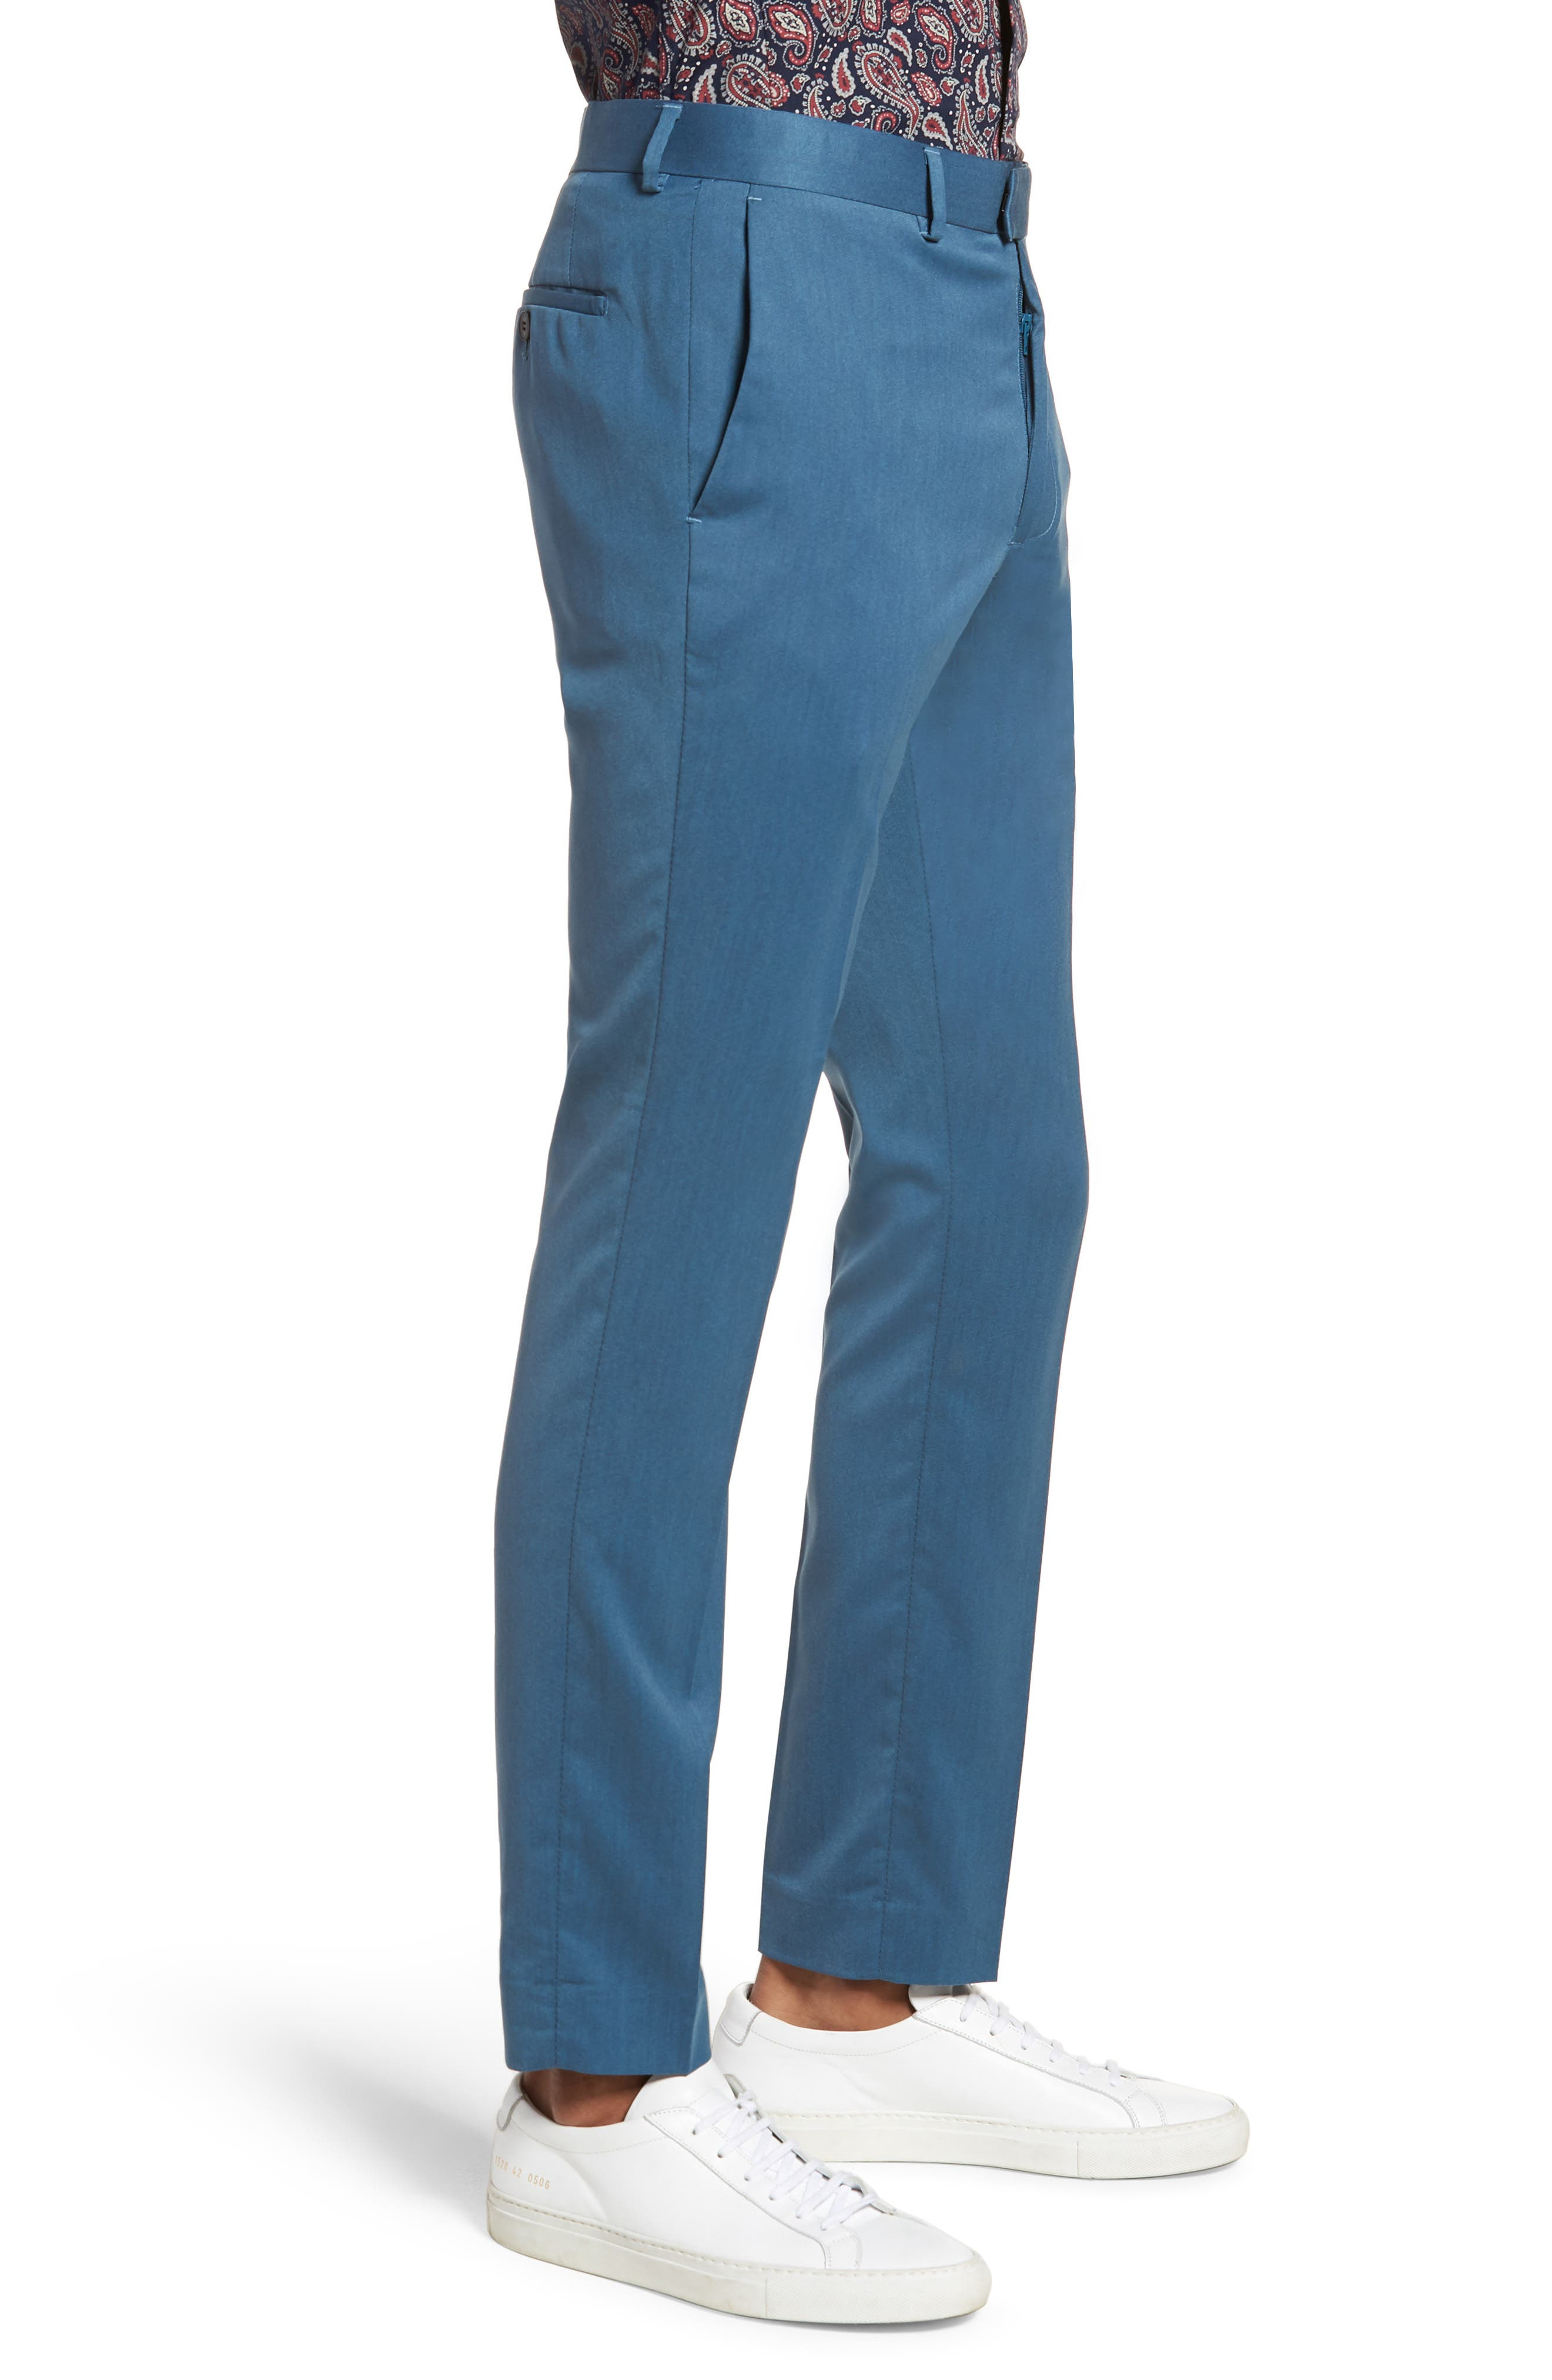 Skinny Fit Suit Trousers,                             Alternate thumbnail 3, color,                             450